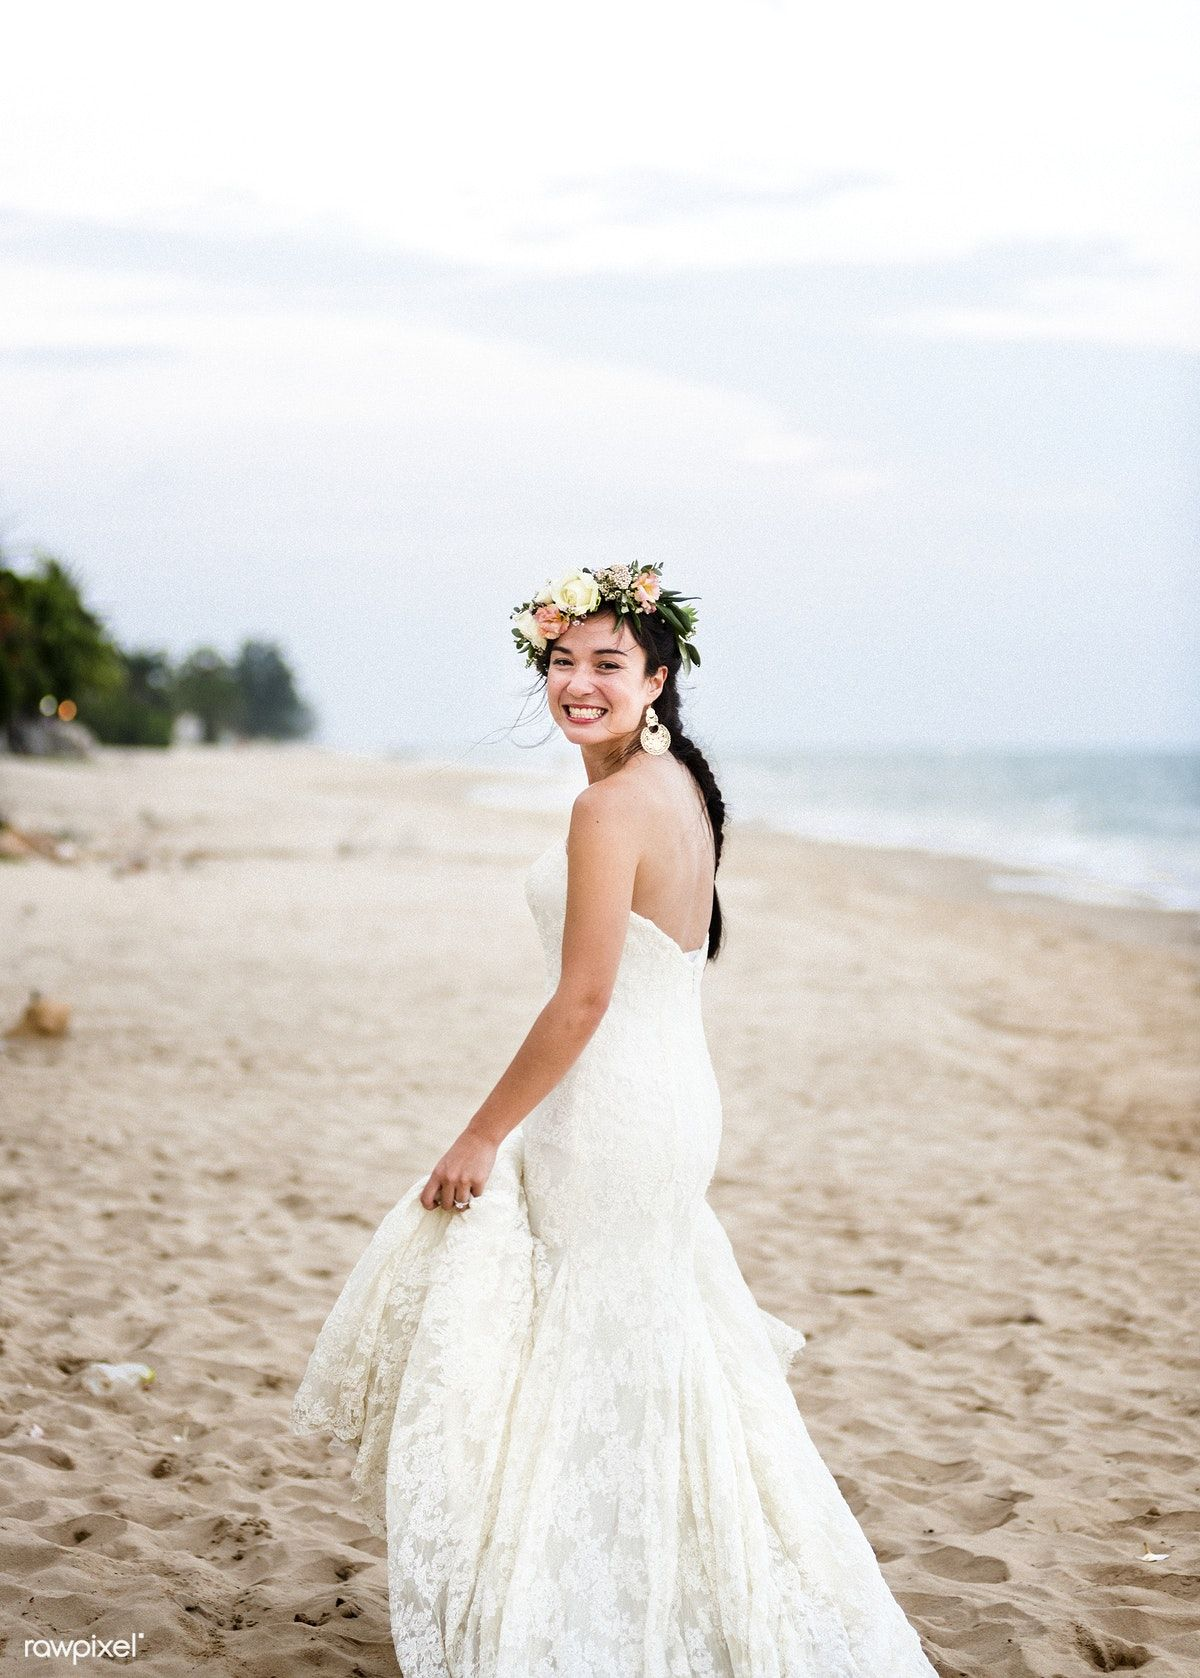 Download Premium Photo Of Young Bride In Her Wedding Dress On The Beach